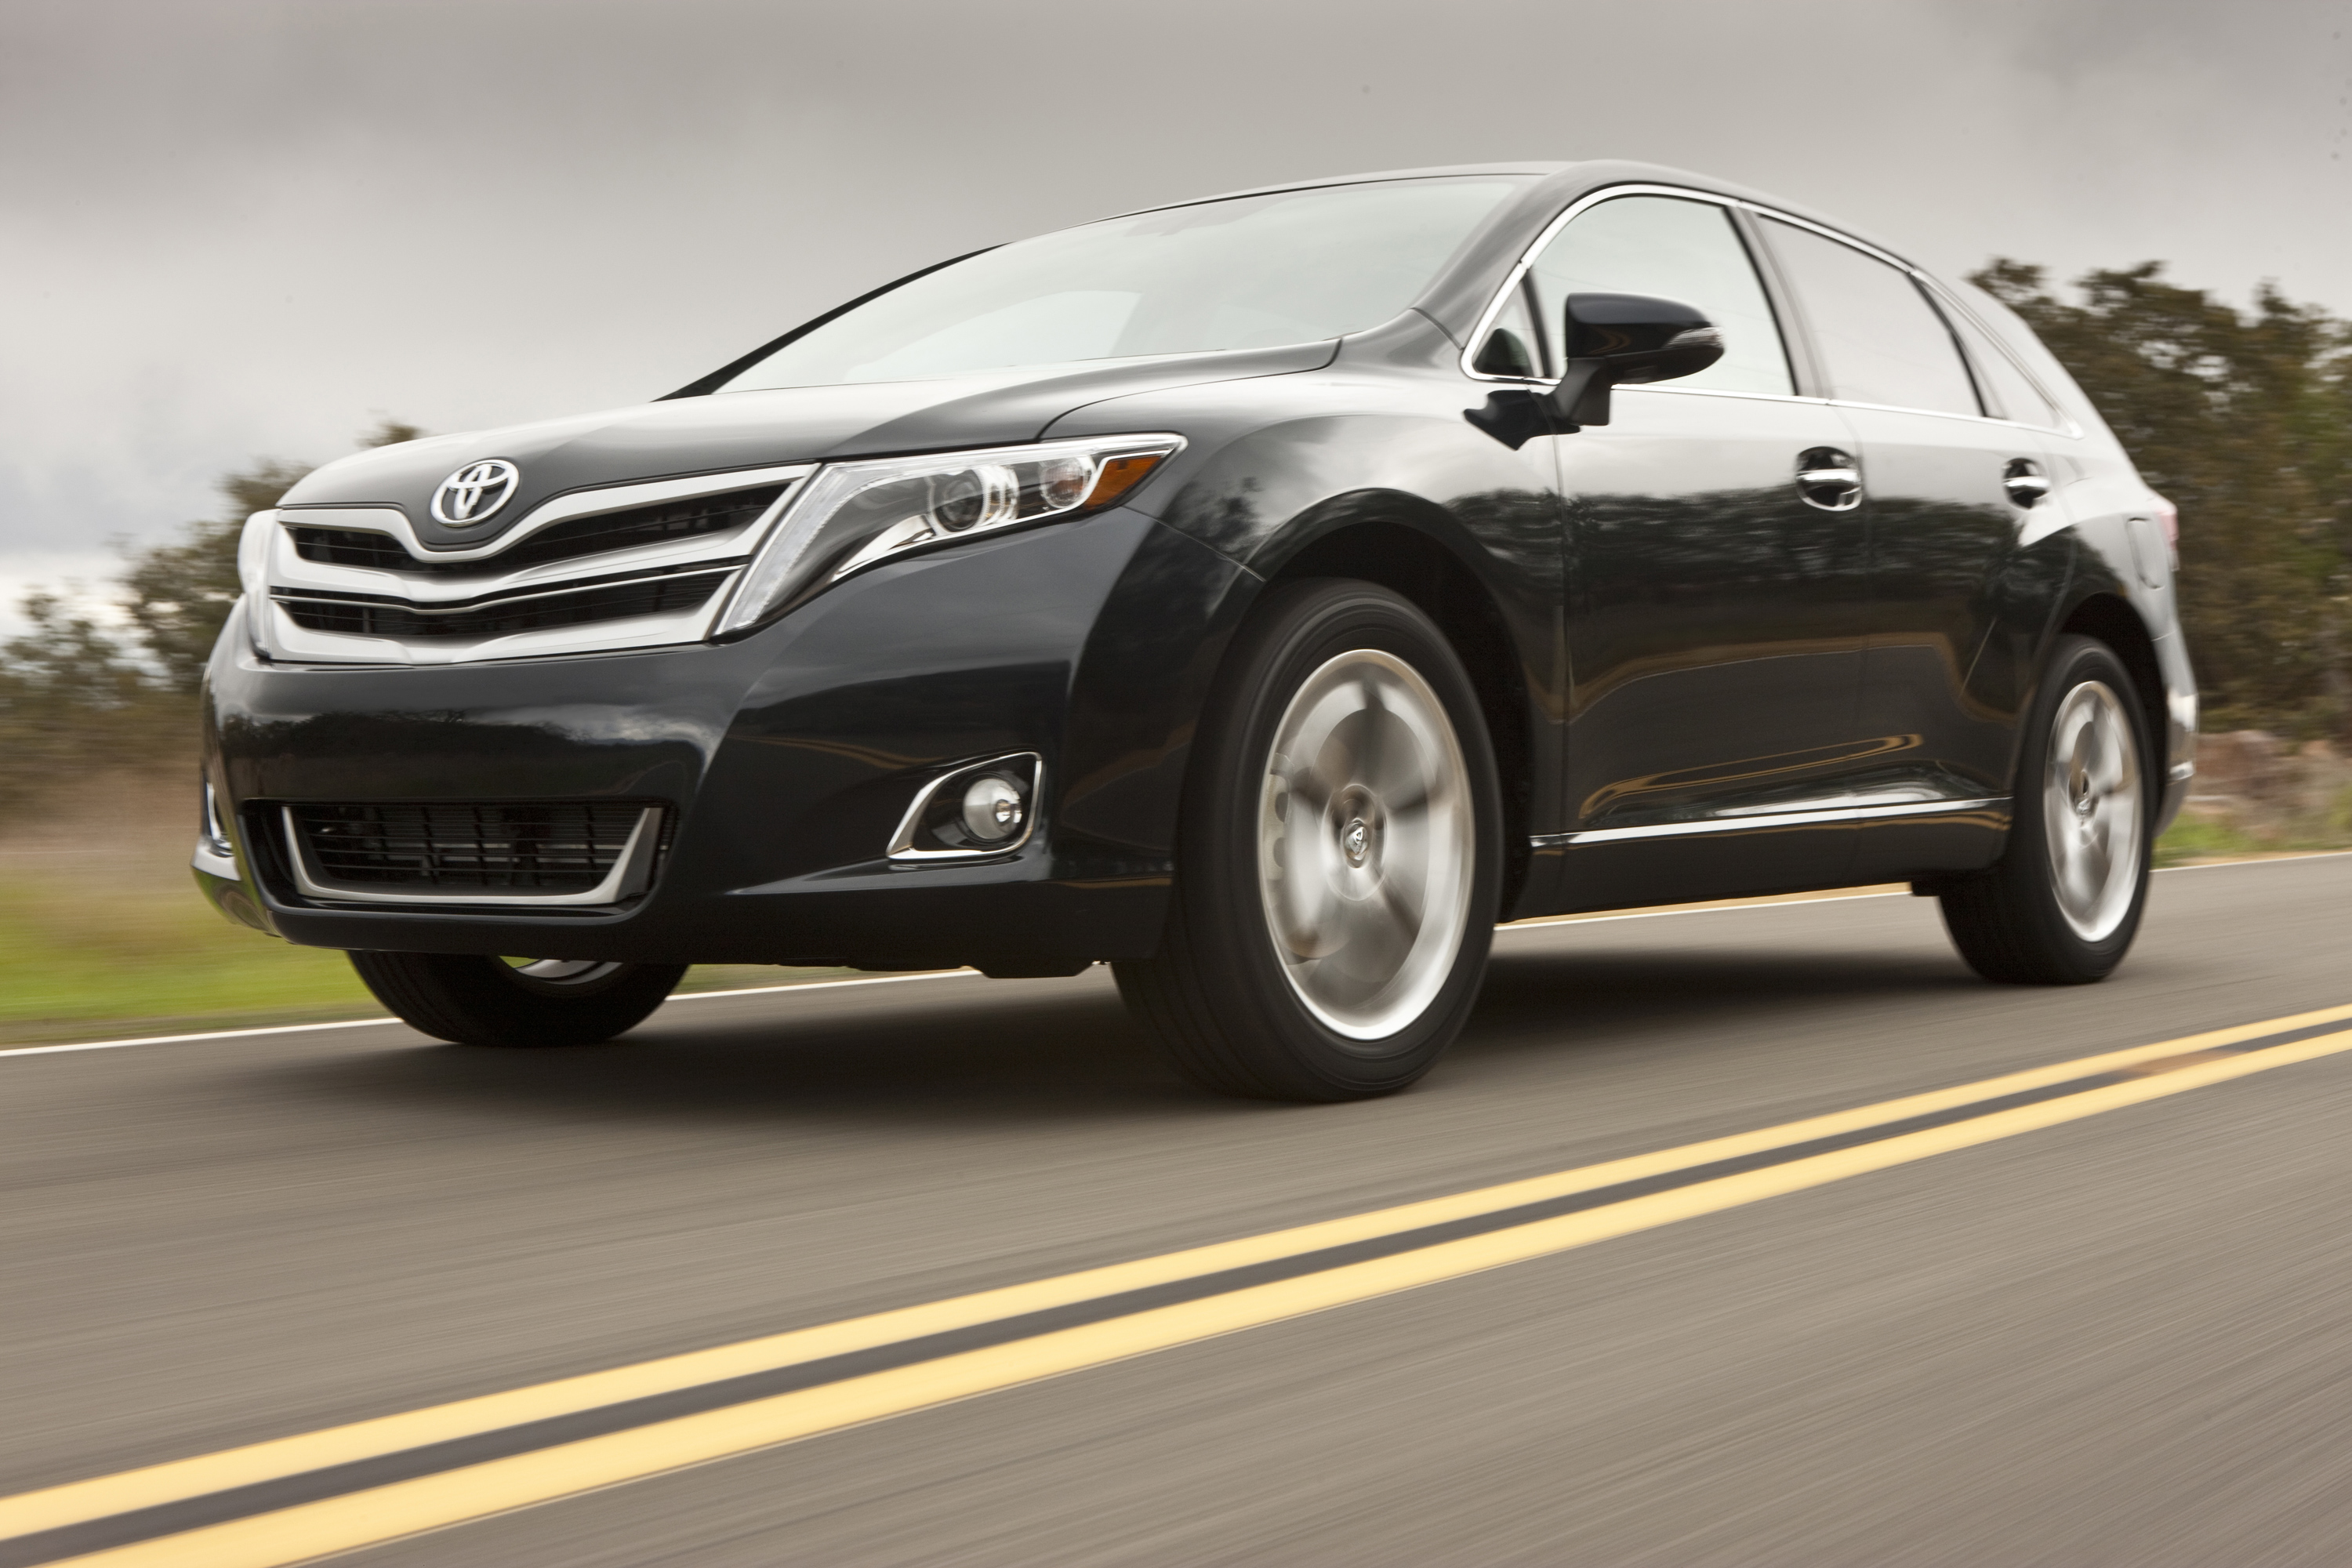 toyota canada series s pioneers best review leasebusters lease venza takeover